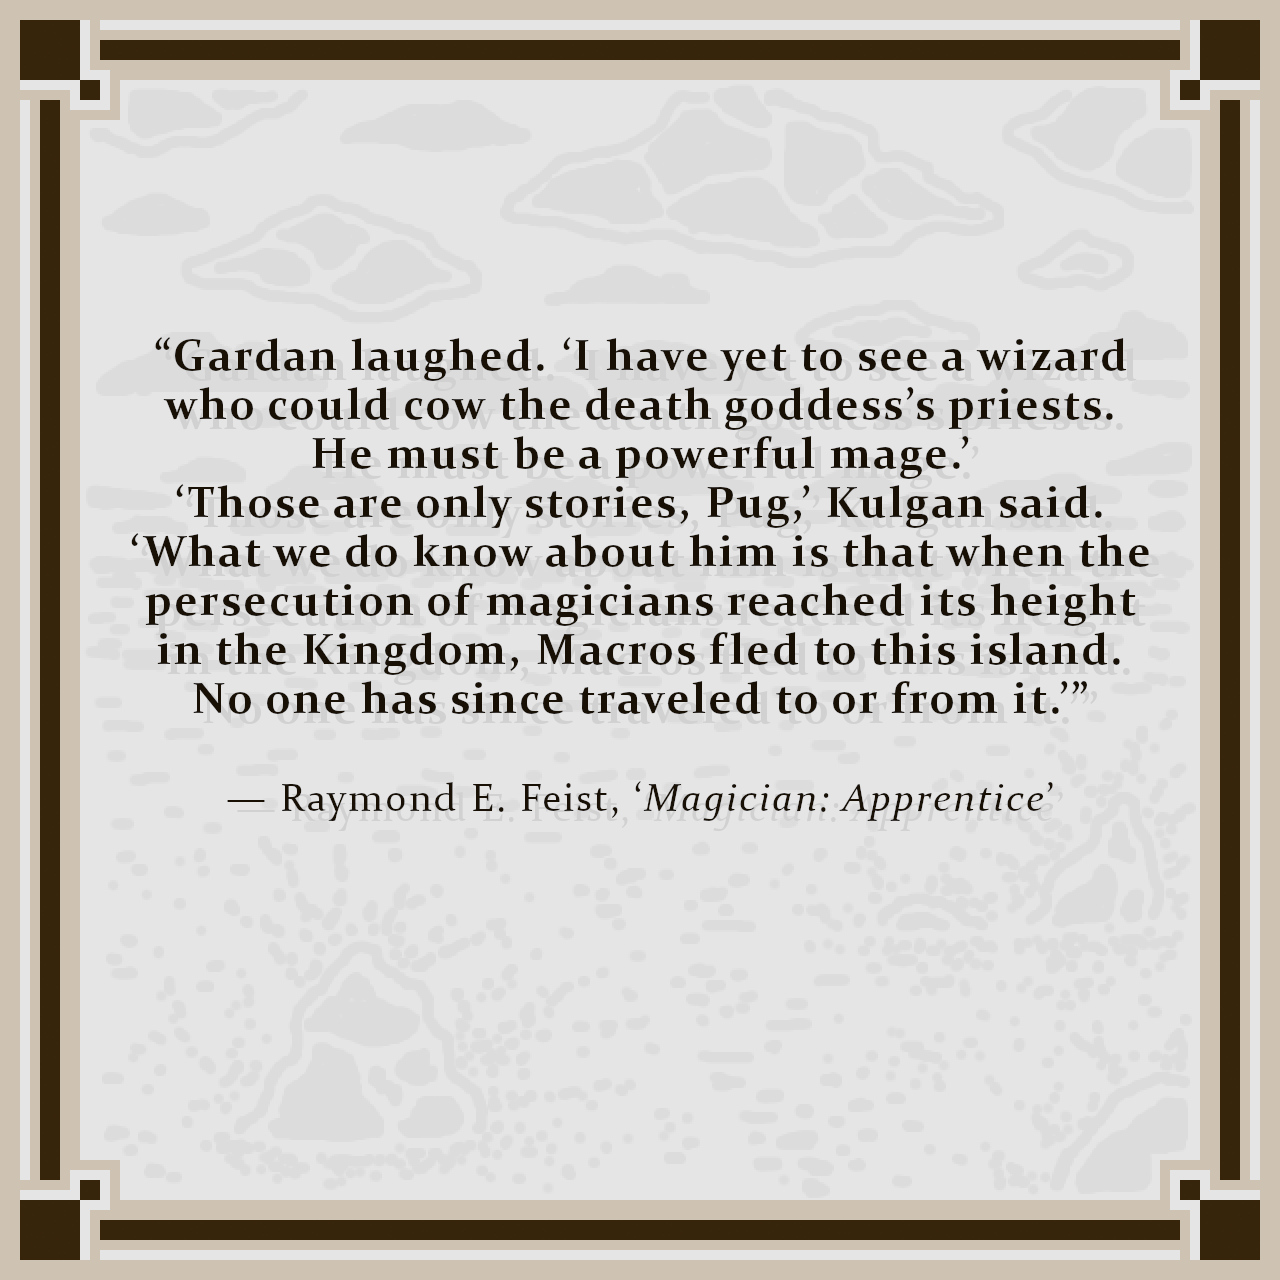 """""""Gardan laughed. 'I have yet to see a wizard who could cow the death goddess's priests. He must be a powerful mage.' 'Those are only stories, Pug,' Kulgan said. 'What we do know about him is that when the persecution of magicians reached its height in the Kingdom, Macros fled to this island. No one has since traveled to or from it.'"""" — Raymond E. Feist, 'Magician: Apprentice'"""